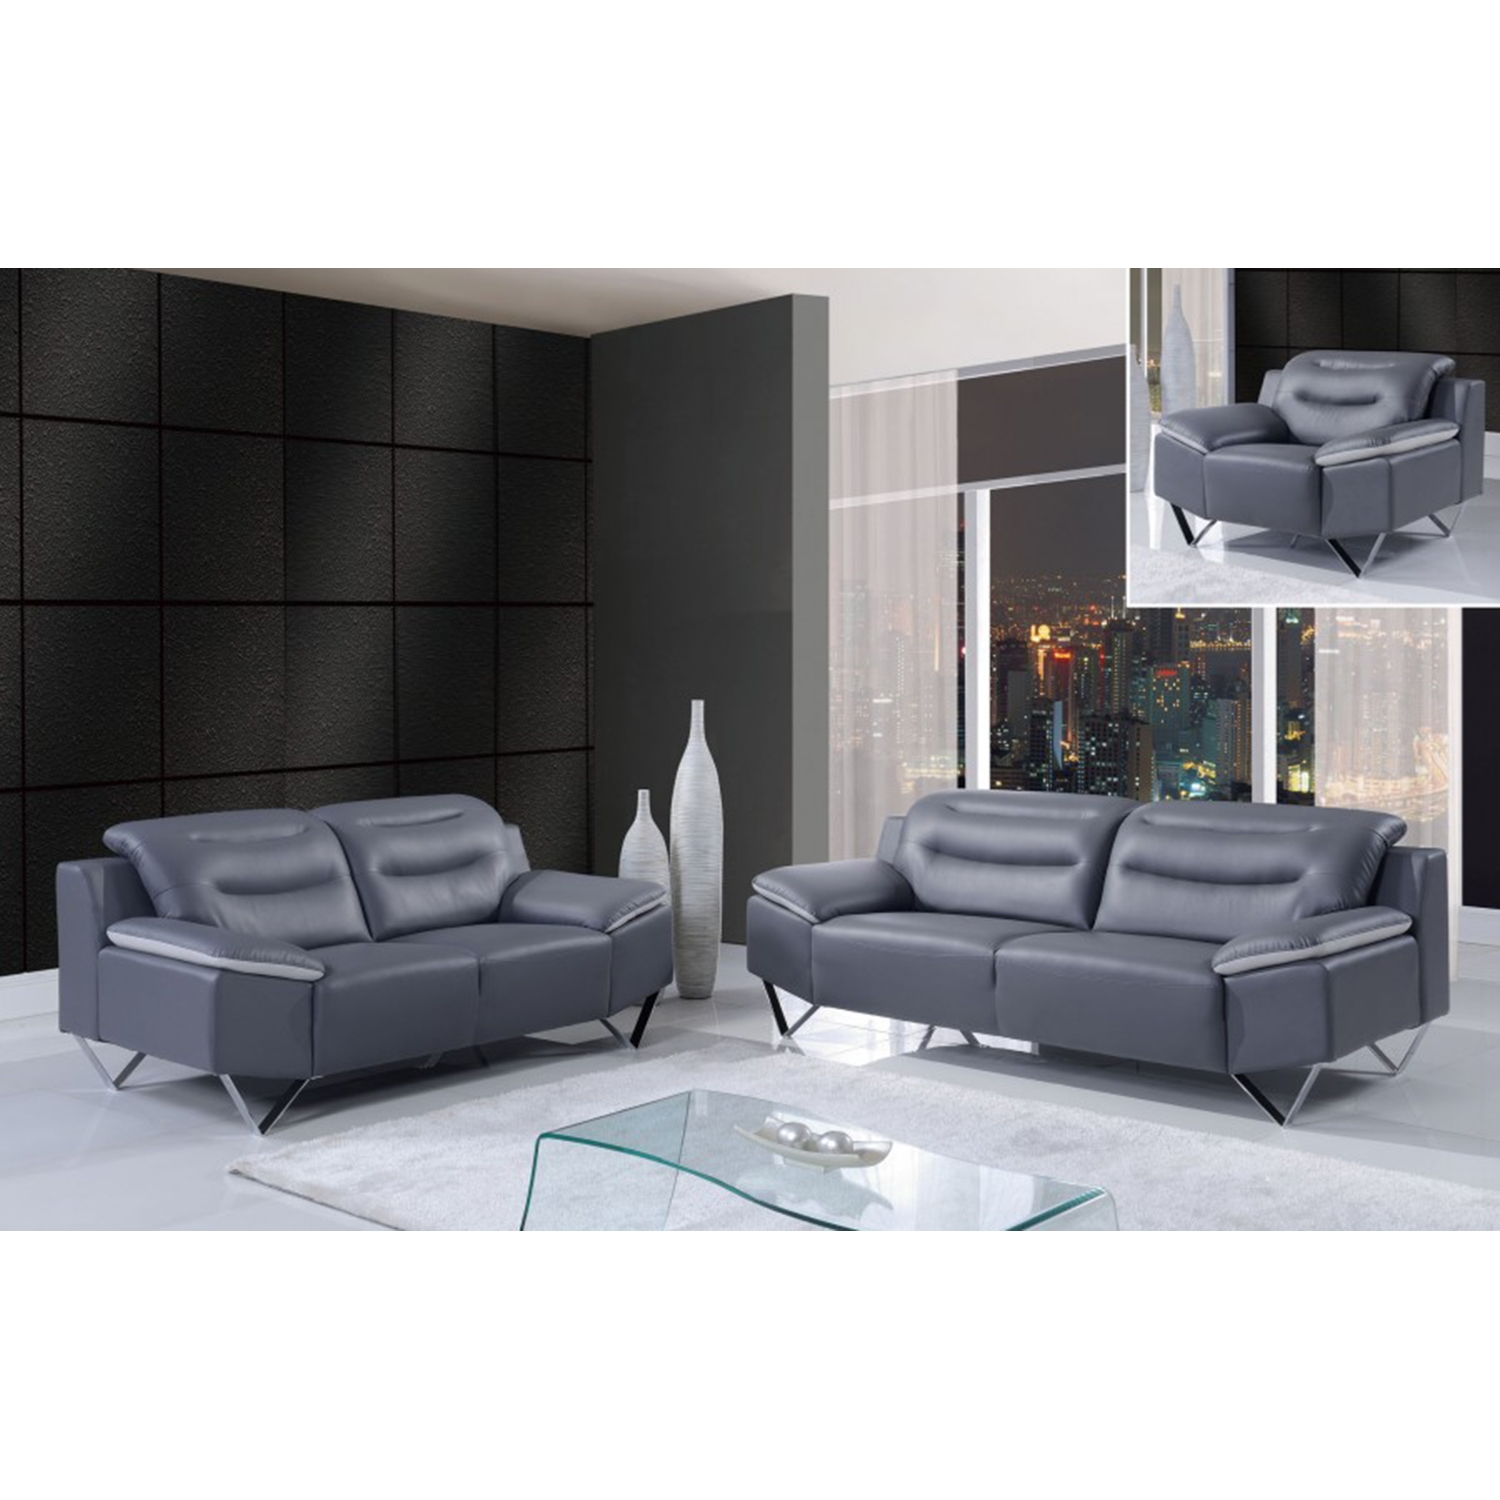 Liliana Sofa Set in Natalie Dark Gray/Light Gray - GLO-U7181-R6U6-SET